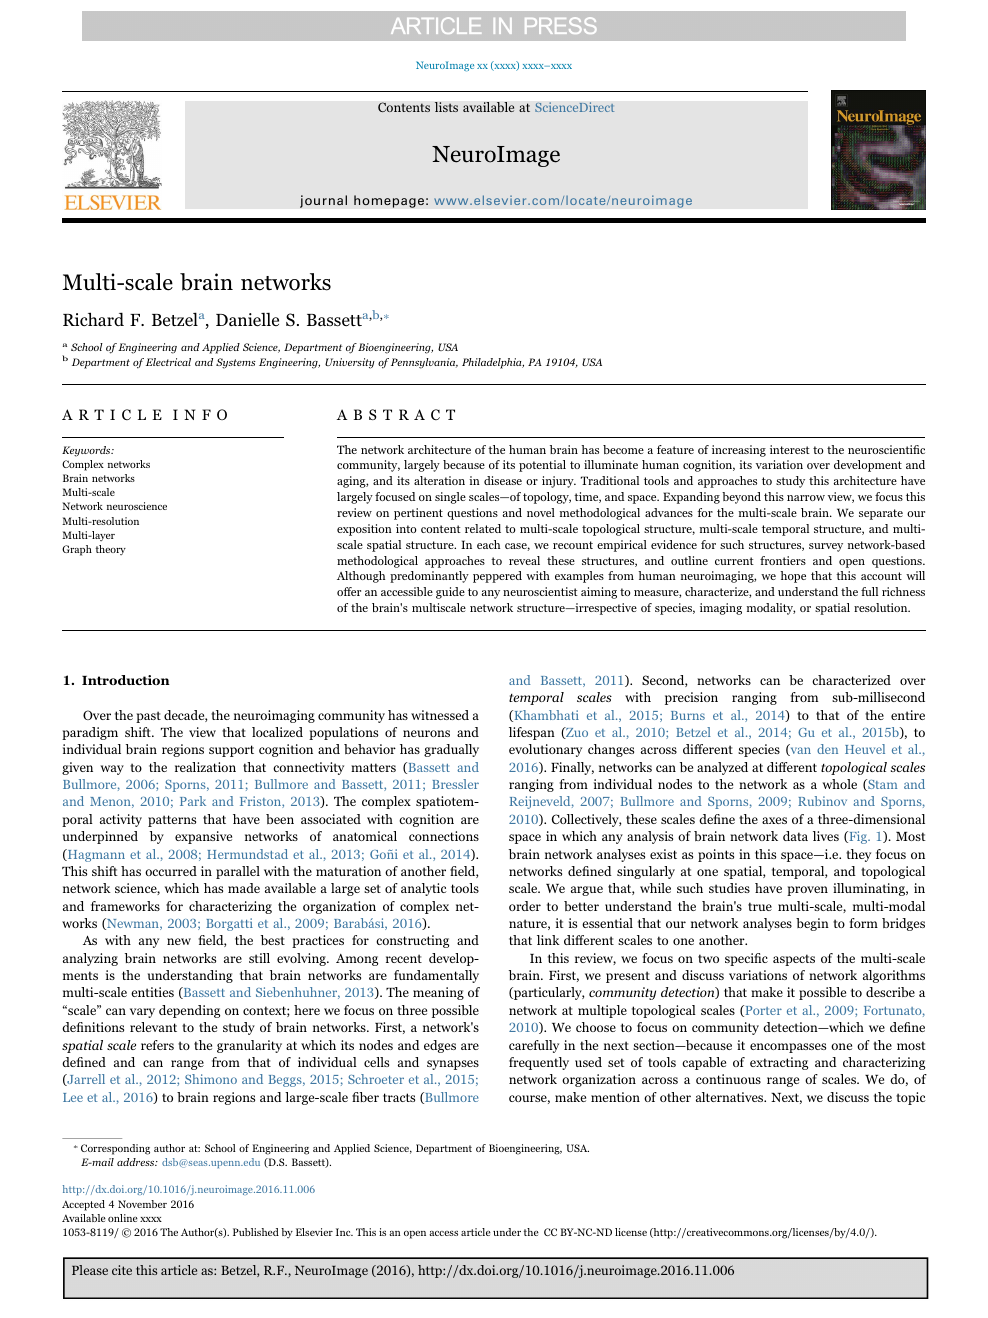 Multi-scale brain networks – topic of research paper in